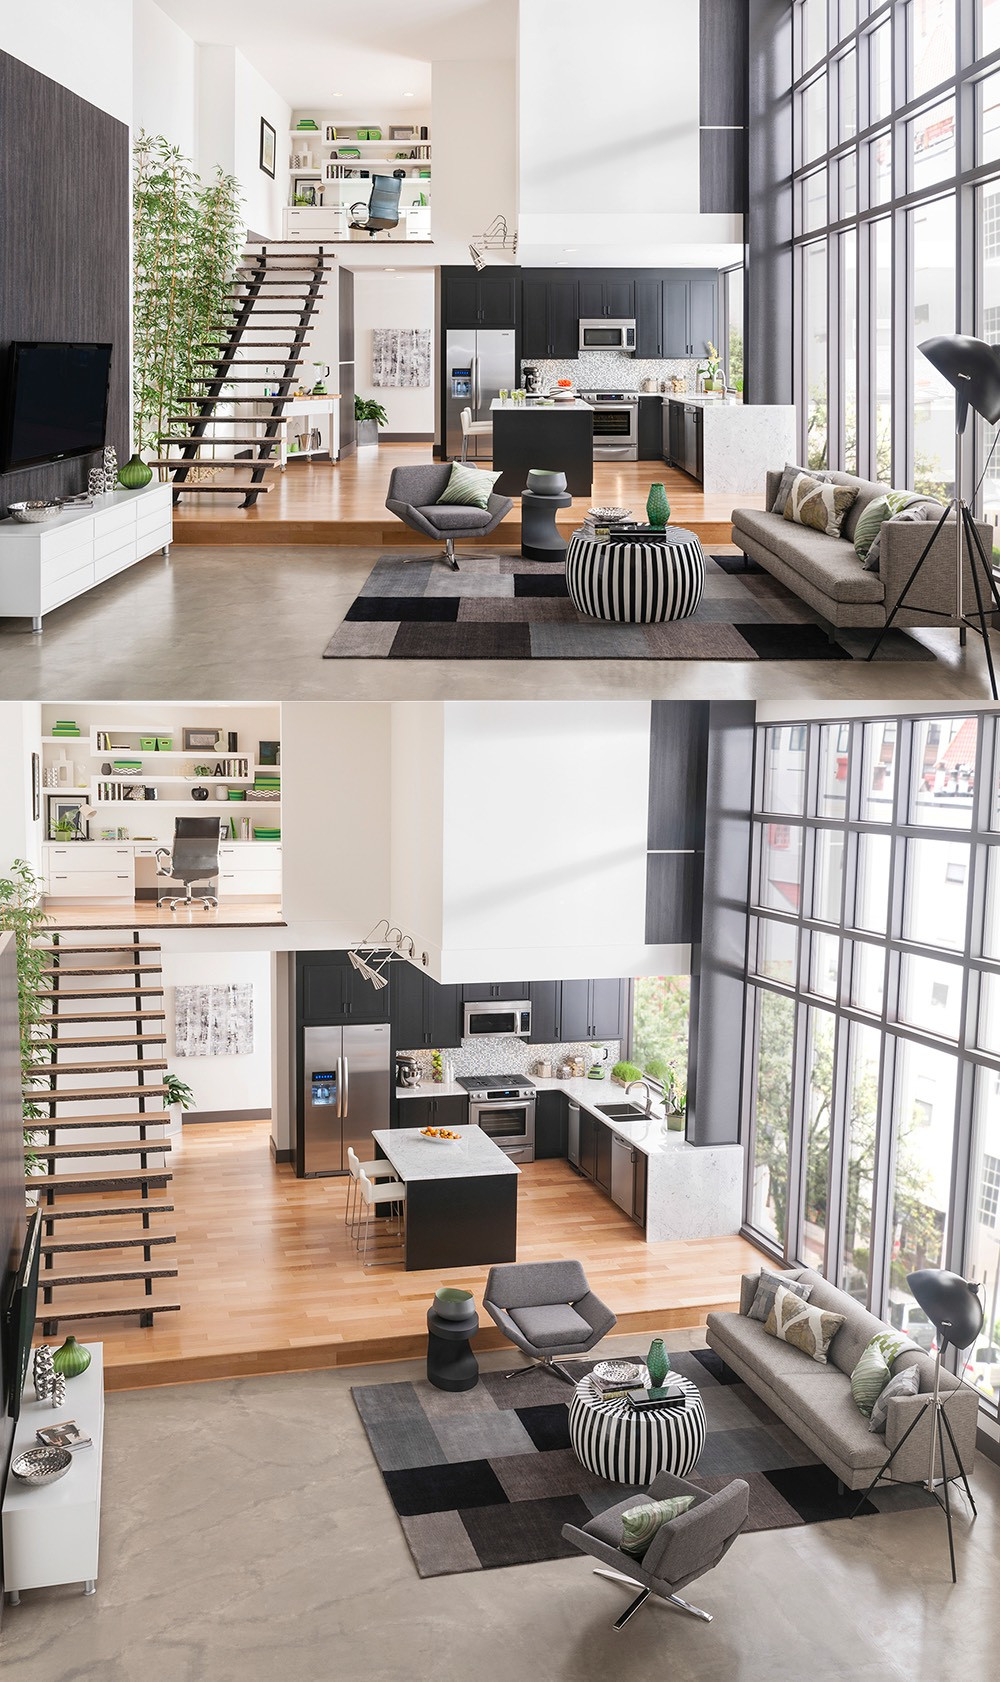 When creating an interior, you need to think of the house as a single whole space, consisting of separate rooms, interconnected by halls and staircases. Therefore, it is natural that the general style and idea extend to the whole house. This does not mean that all interior design elements should be the same. They should be combined and complementary to each other to enhance the whole composition .